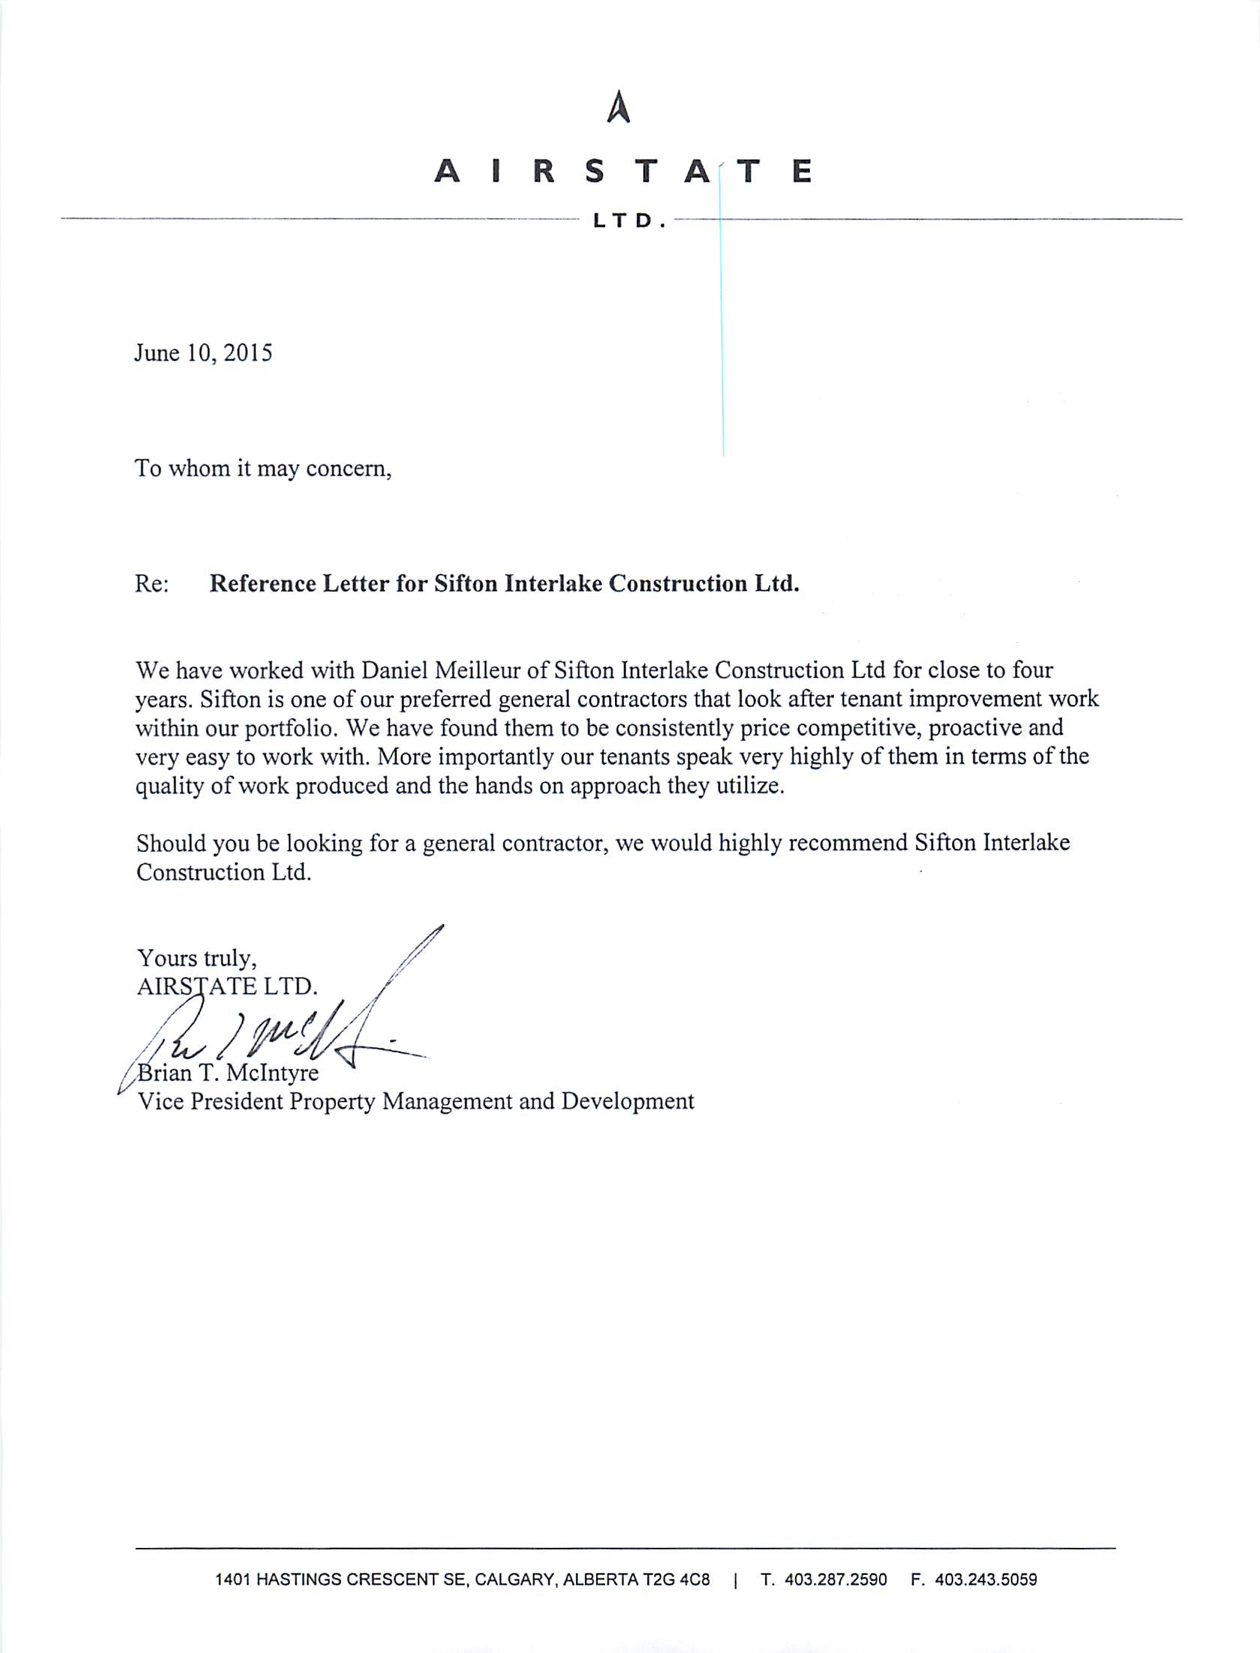 airstate letter of reference sifton interlake construction airstate letter of reference